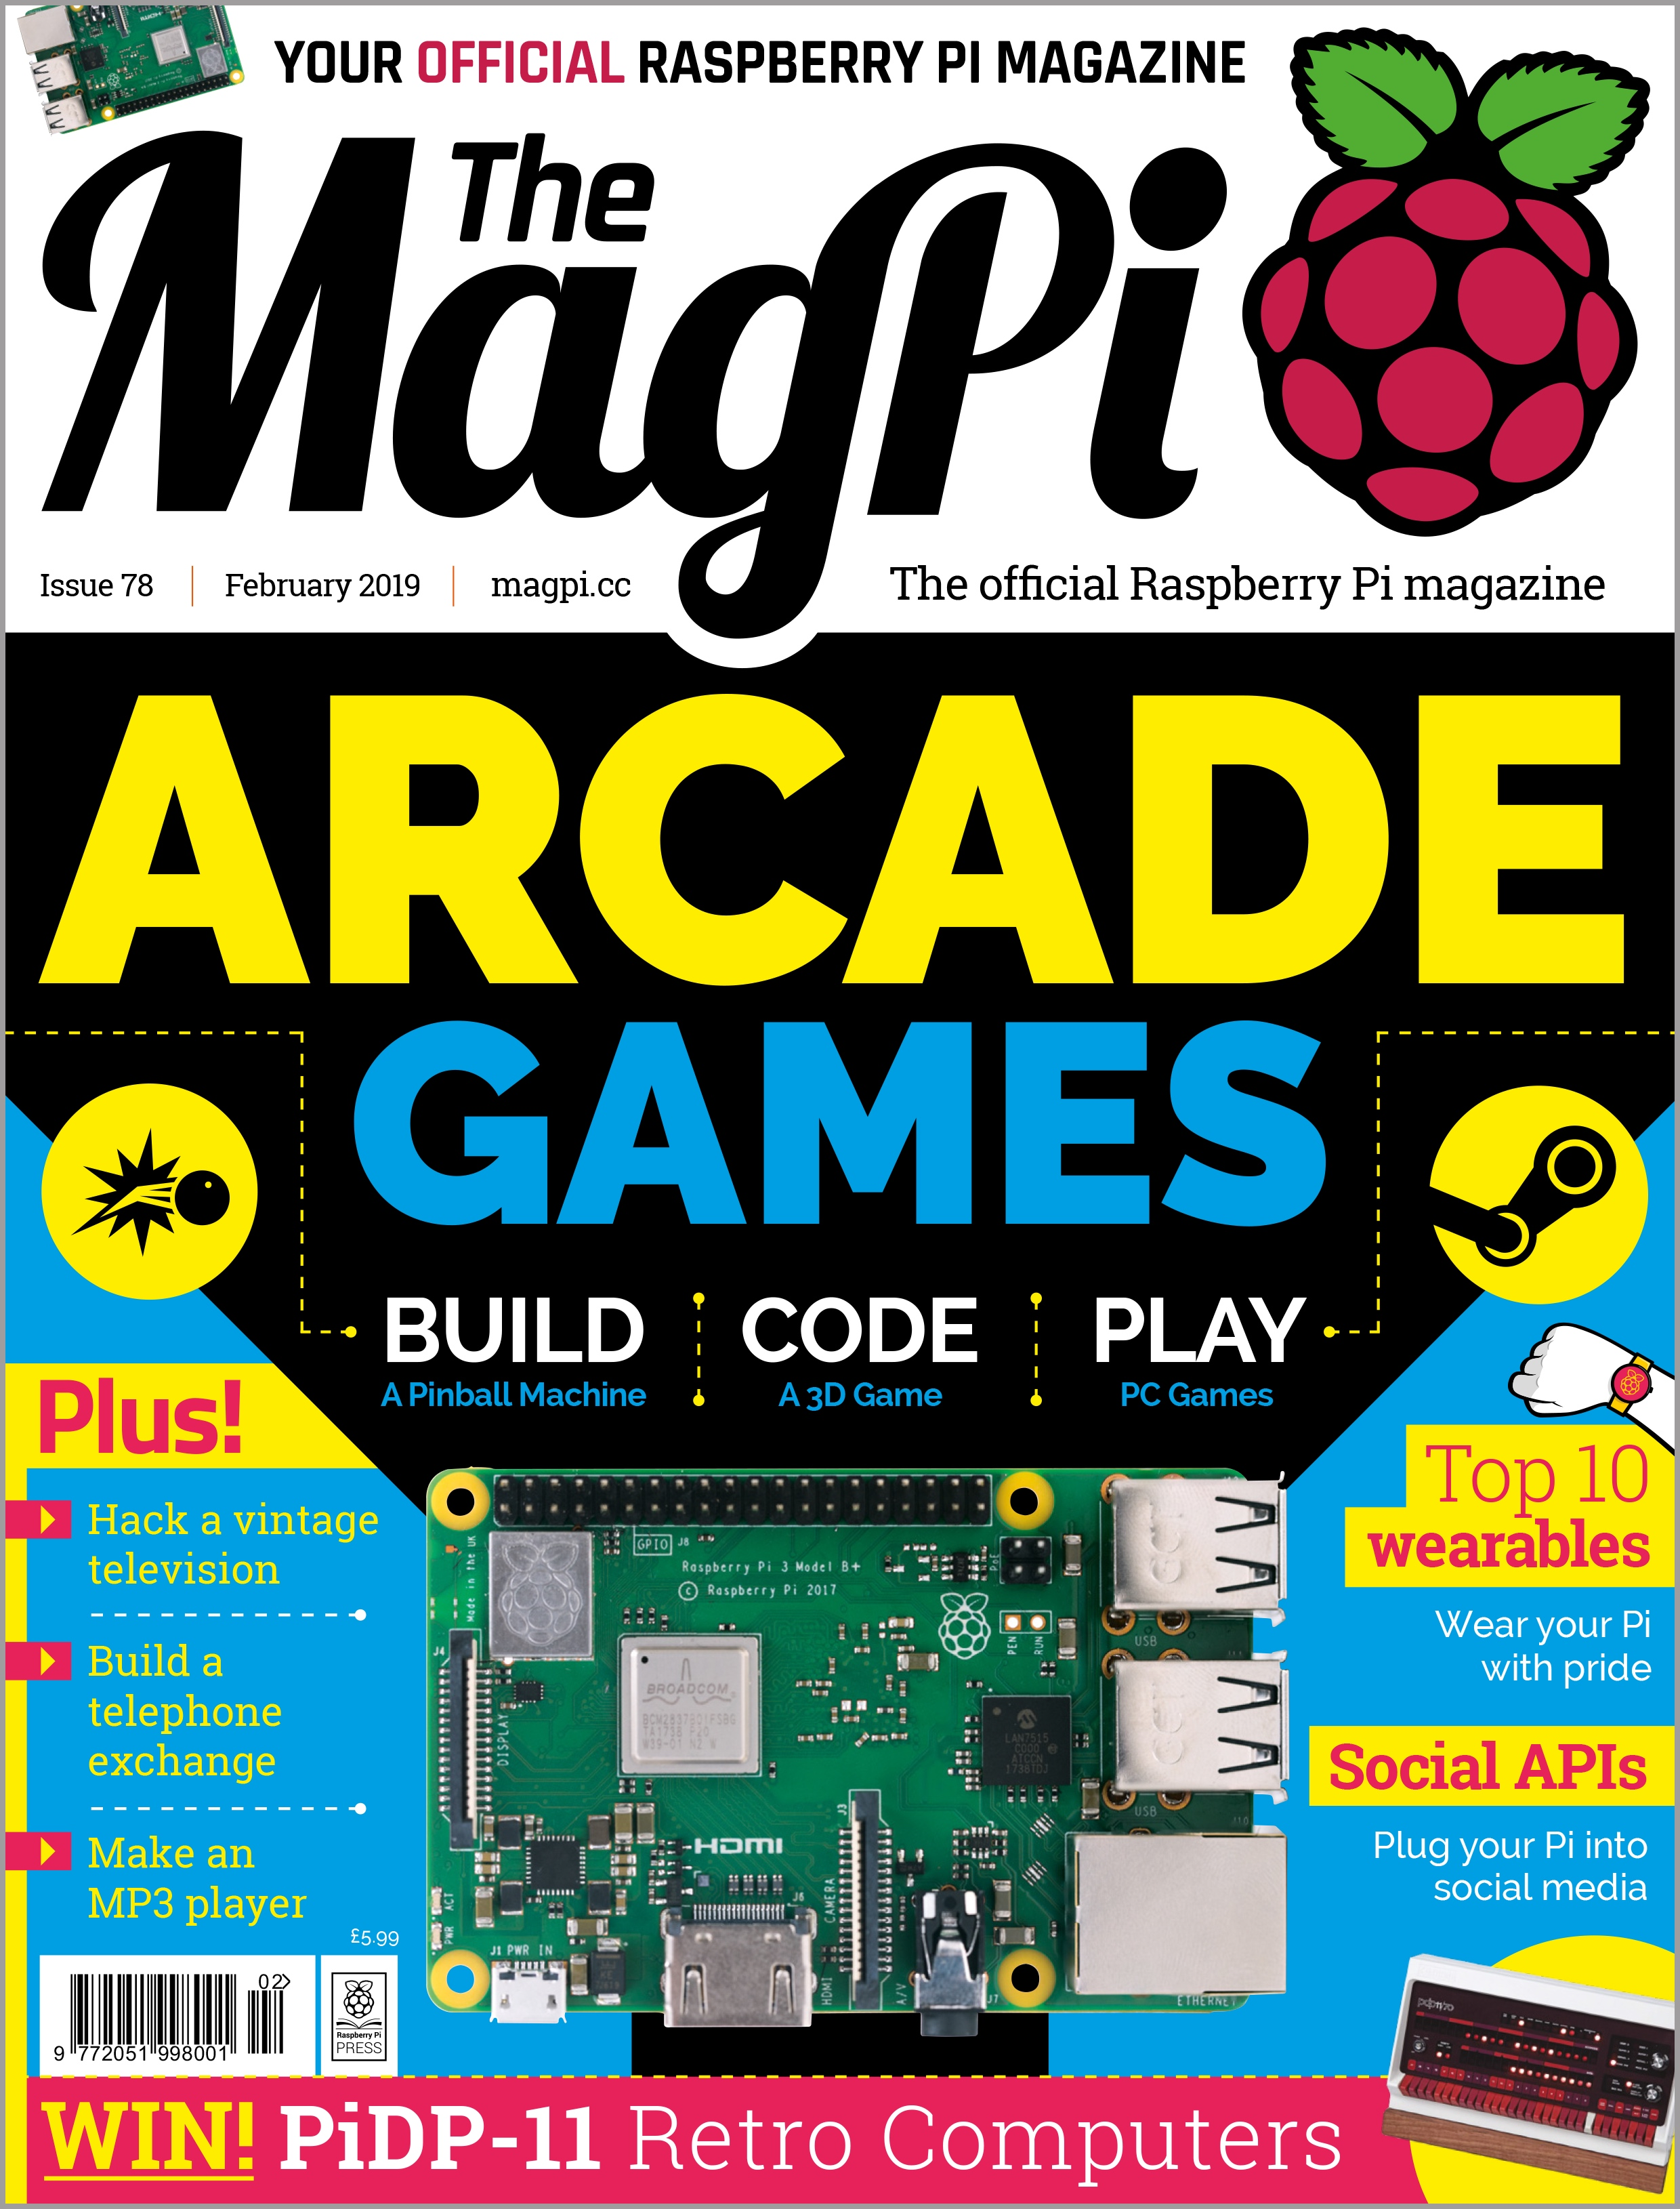 Issue 78 - The MagPi MagazineThe MagPi Magazine